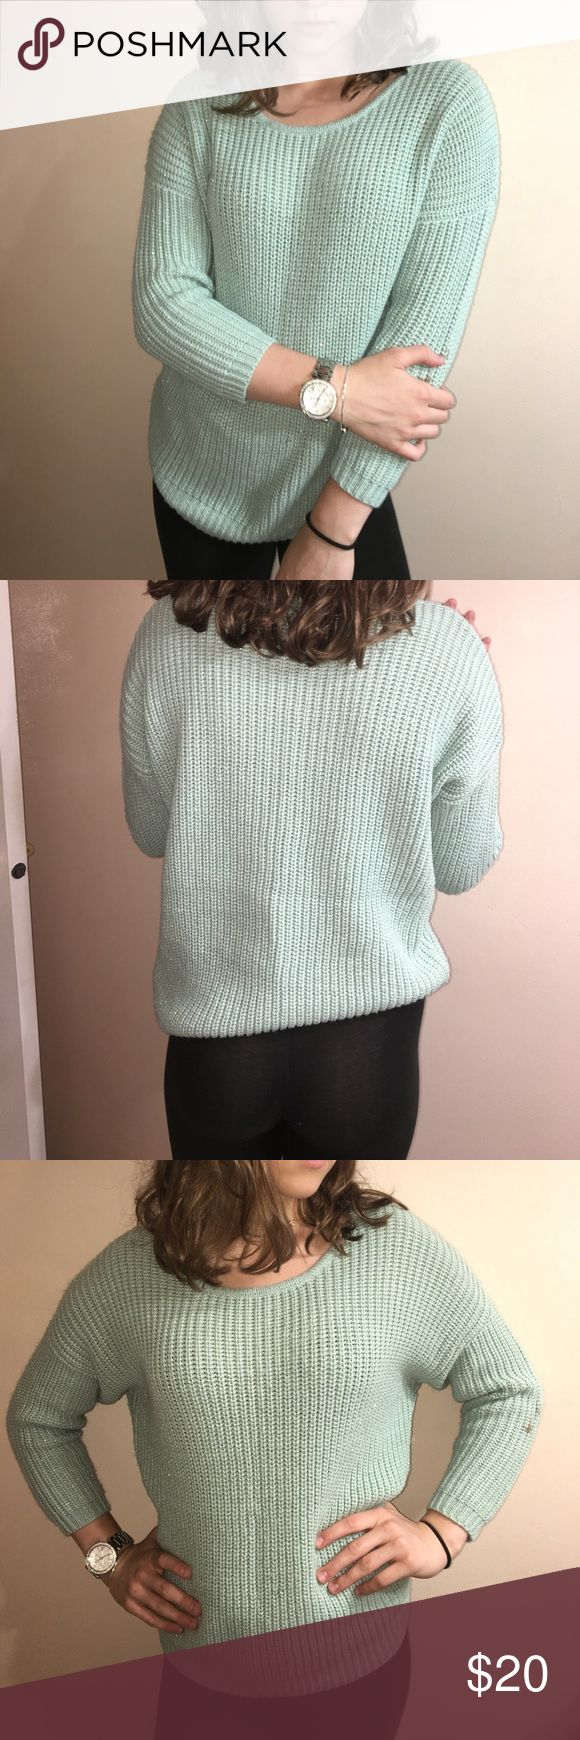 Turquoise sweater Super cute and warm. Unique color. Offers welcome XO Sweaters Crew & Scoop Necks